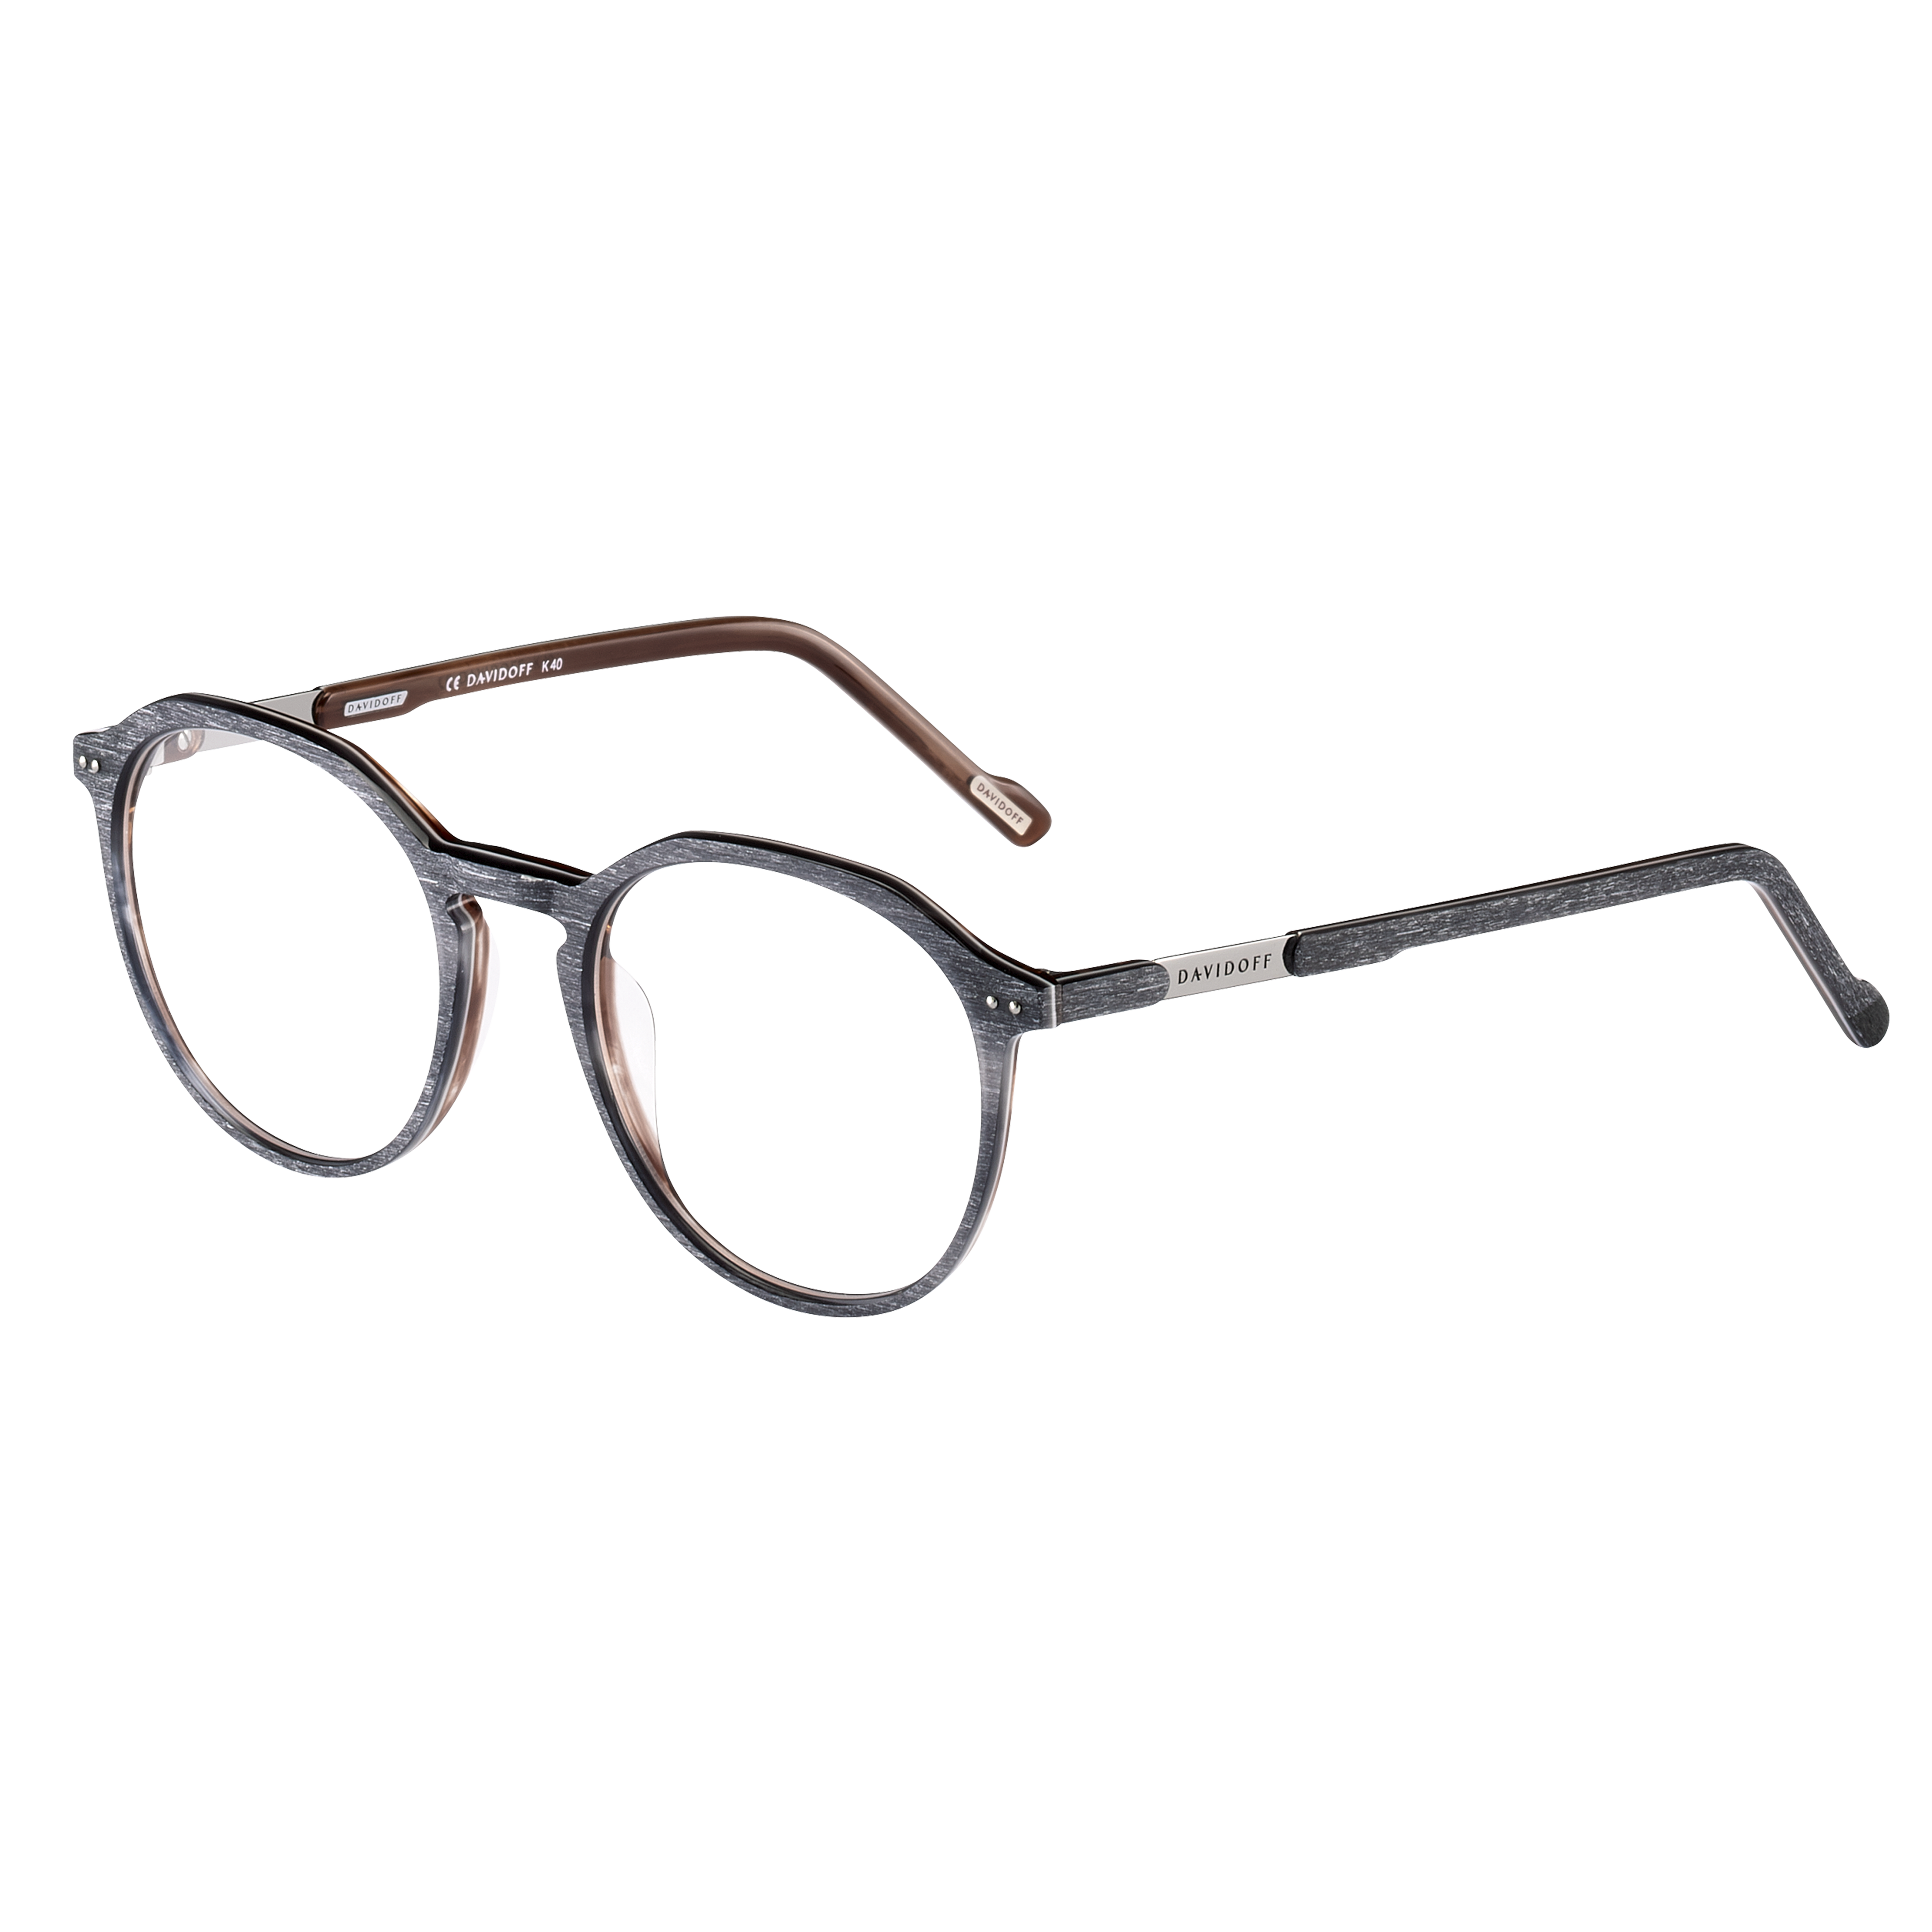 Optical frame – Mod. 92052 color ref. 4566